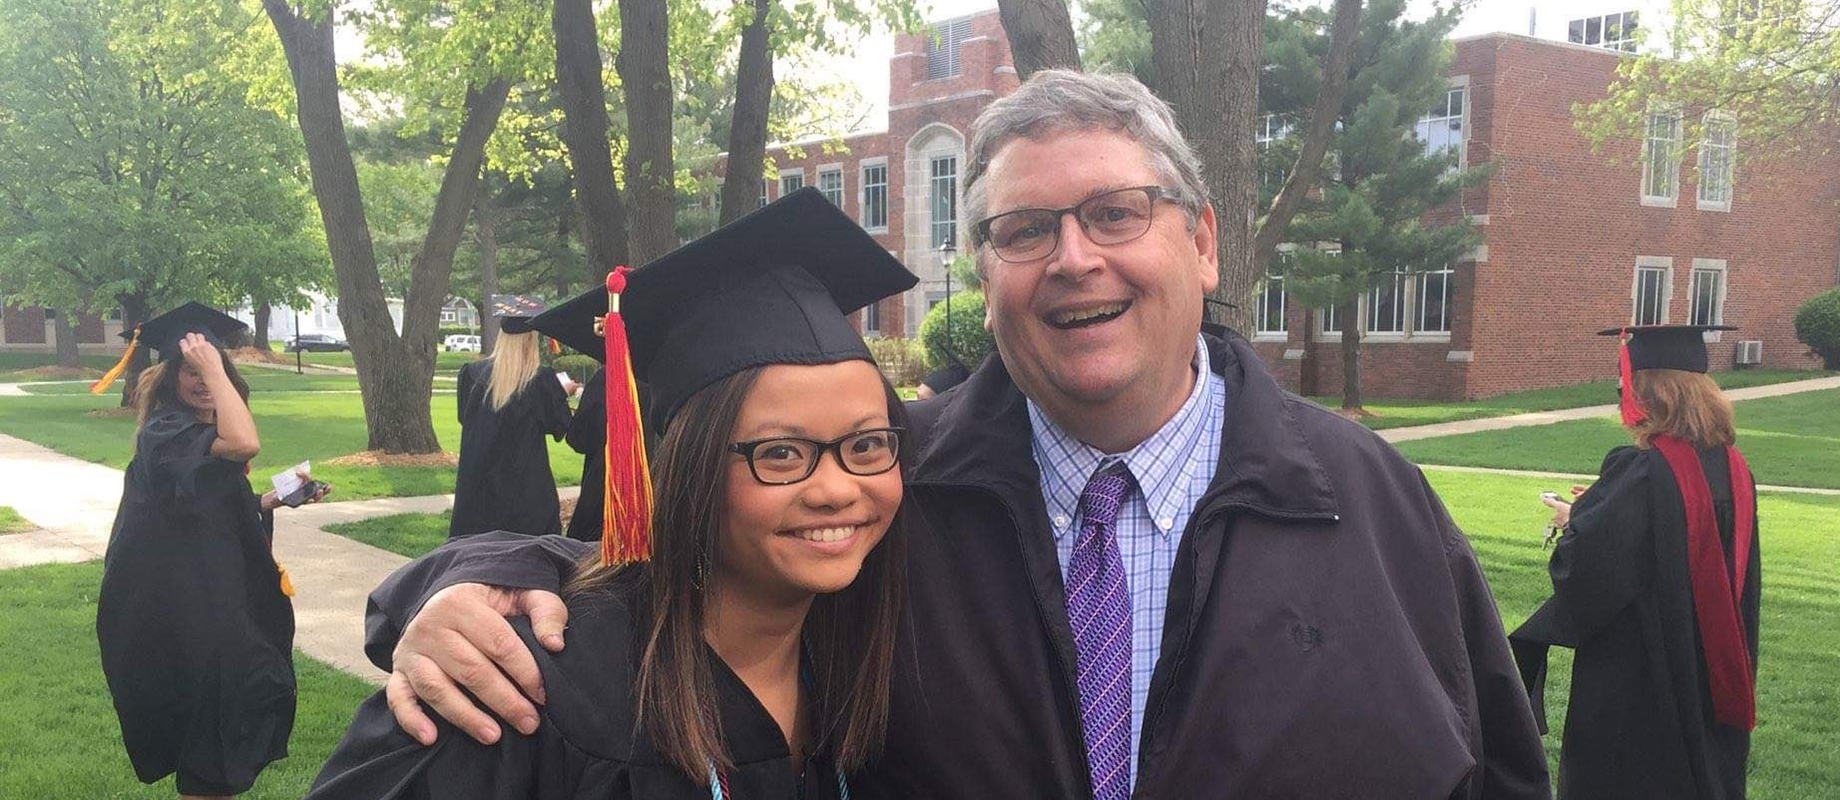 Ken Fuson poses with Steffi Lee '15 following commencement.